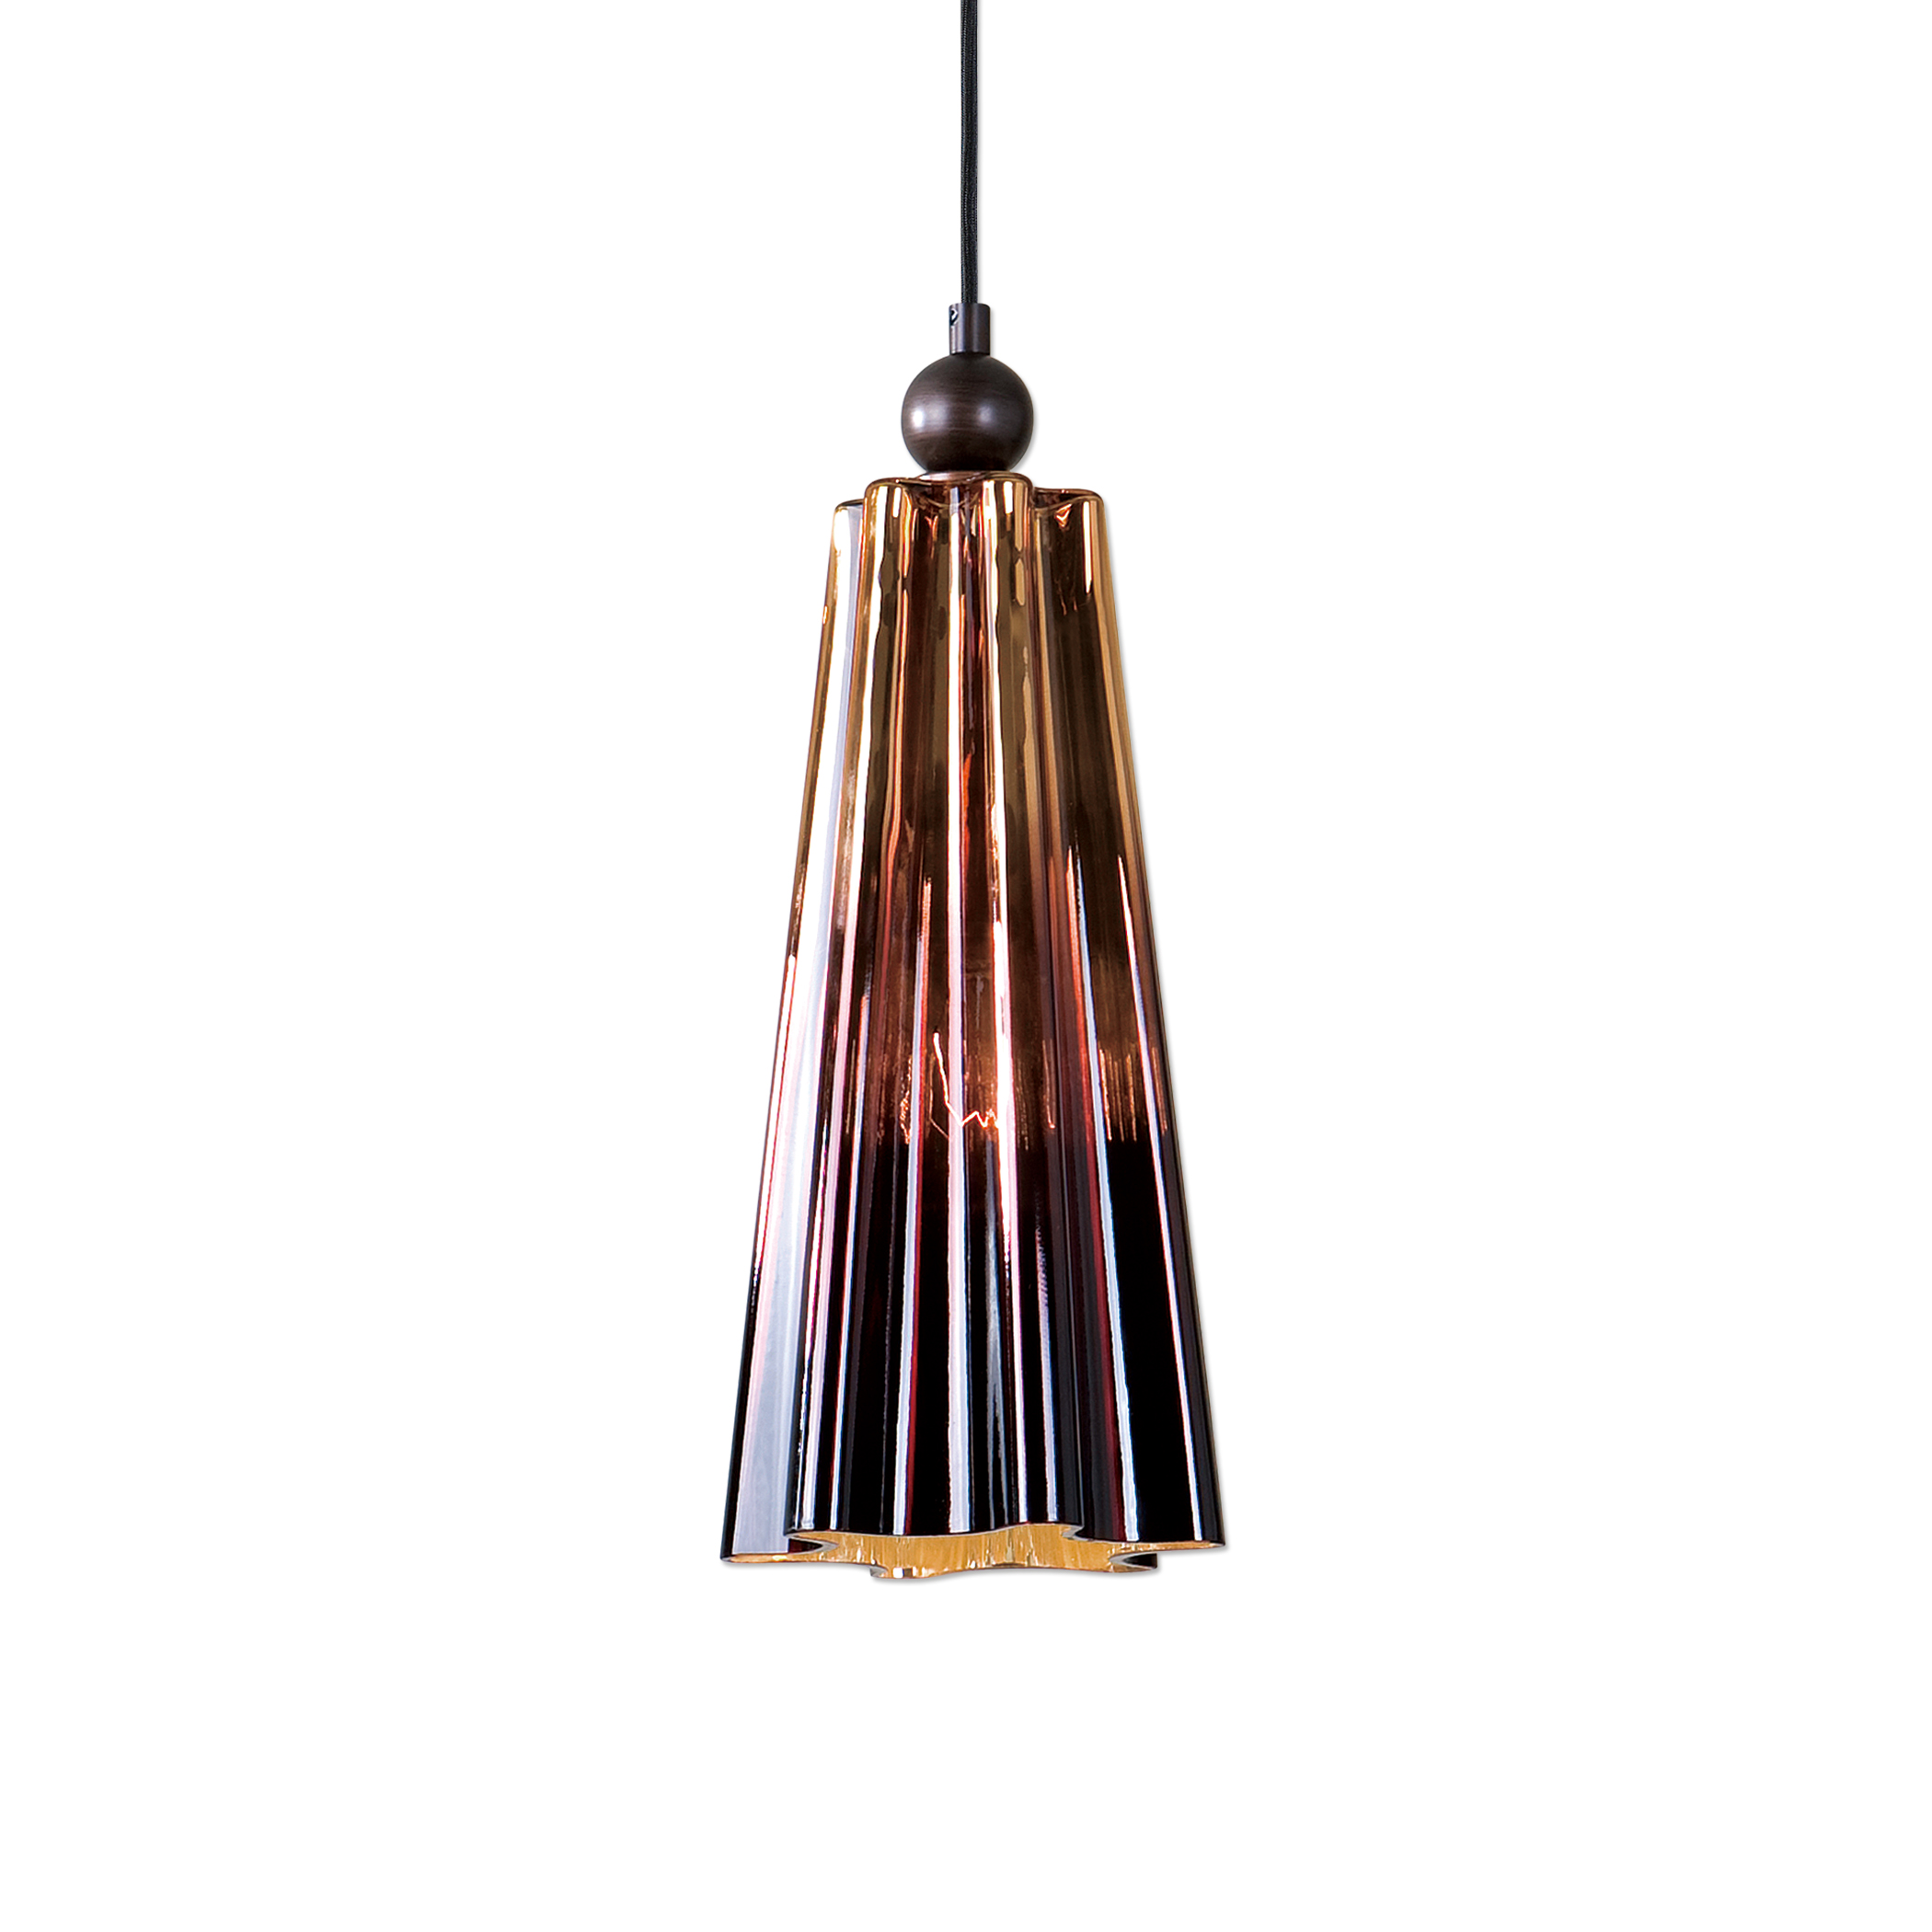 Uttermost Lighting Fixtures Chocley 1 Light Glass Mini Pendant - Item Number: 22079